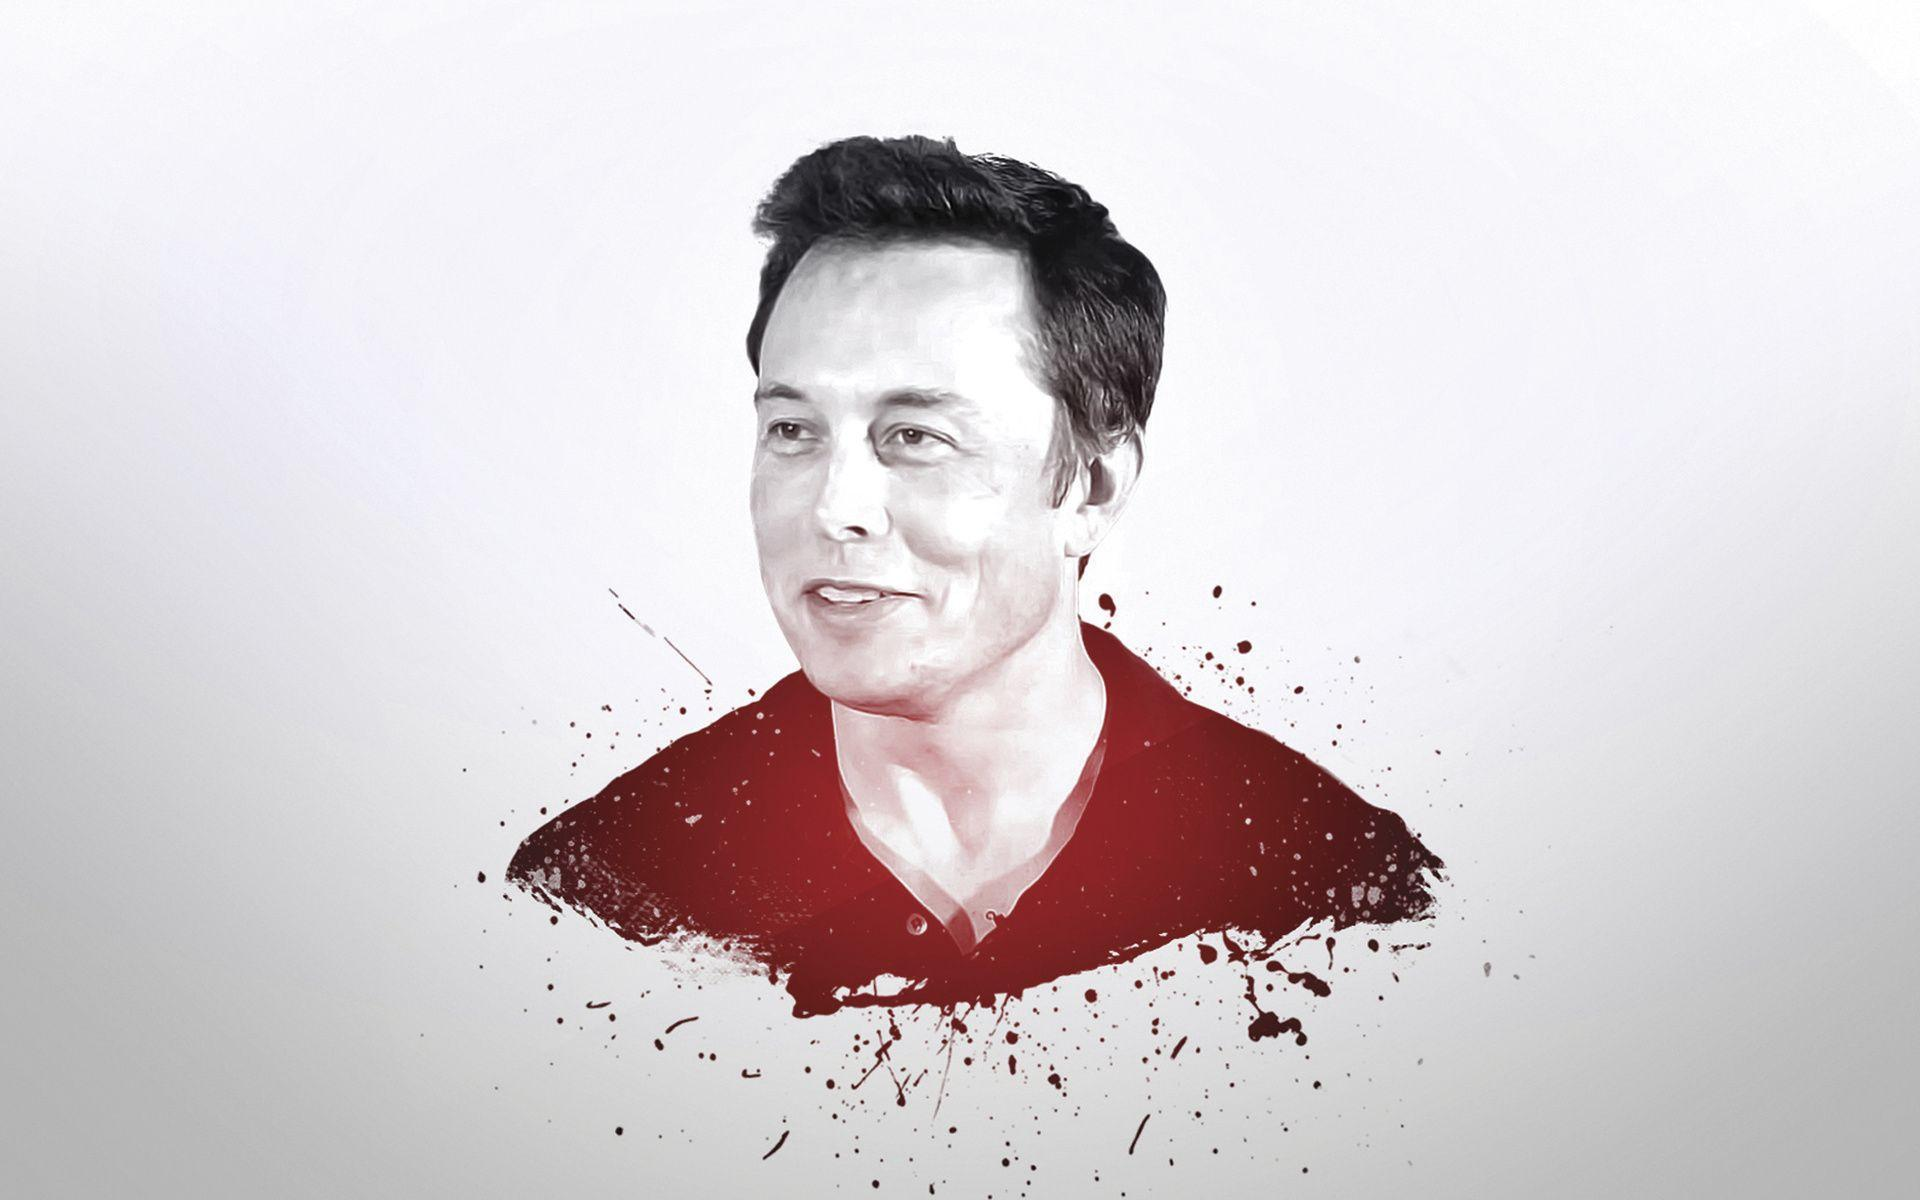 1920x1200 Elon Musk, Spacex, Ceo Of Spacex, Photos Of Elon Musk